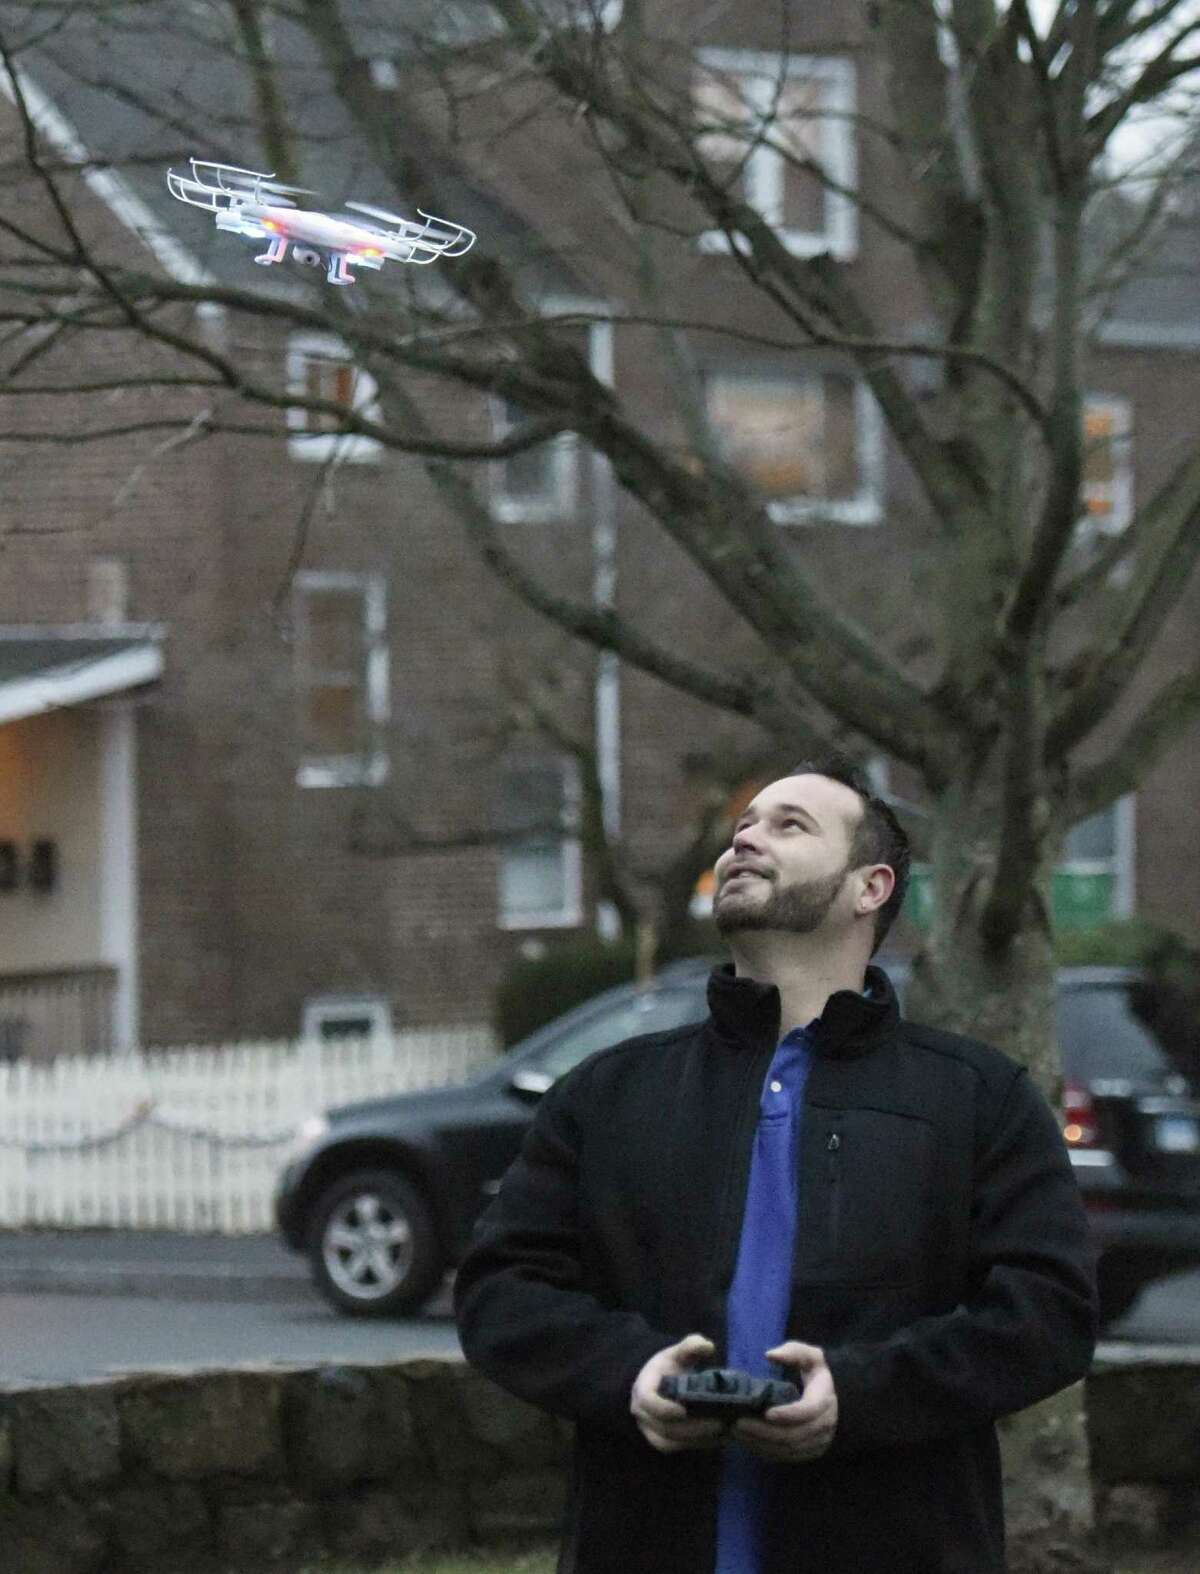 Byram resident Anthony Altamirano flies his drone at Pemberwick Park in Greenwich, Conn. Thursday, Dec. 31, 2015. Altamirano, who also flies model airplane and helicopters, received the super-lightweight drone as a Christmas gift.